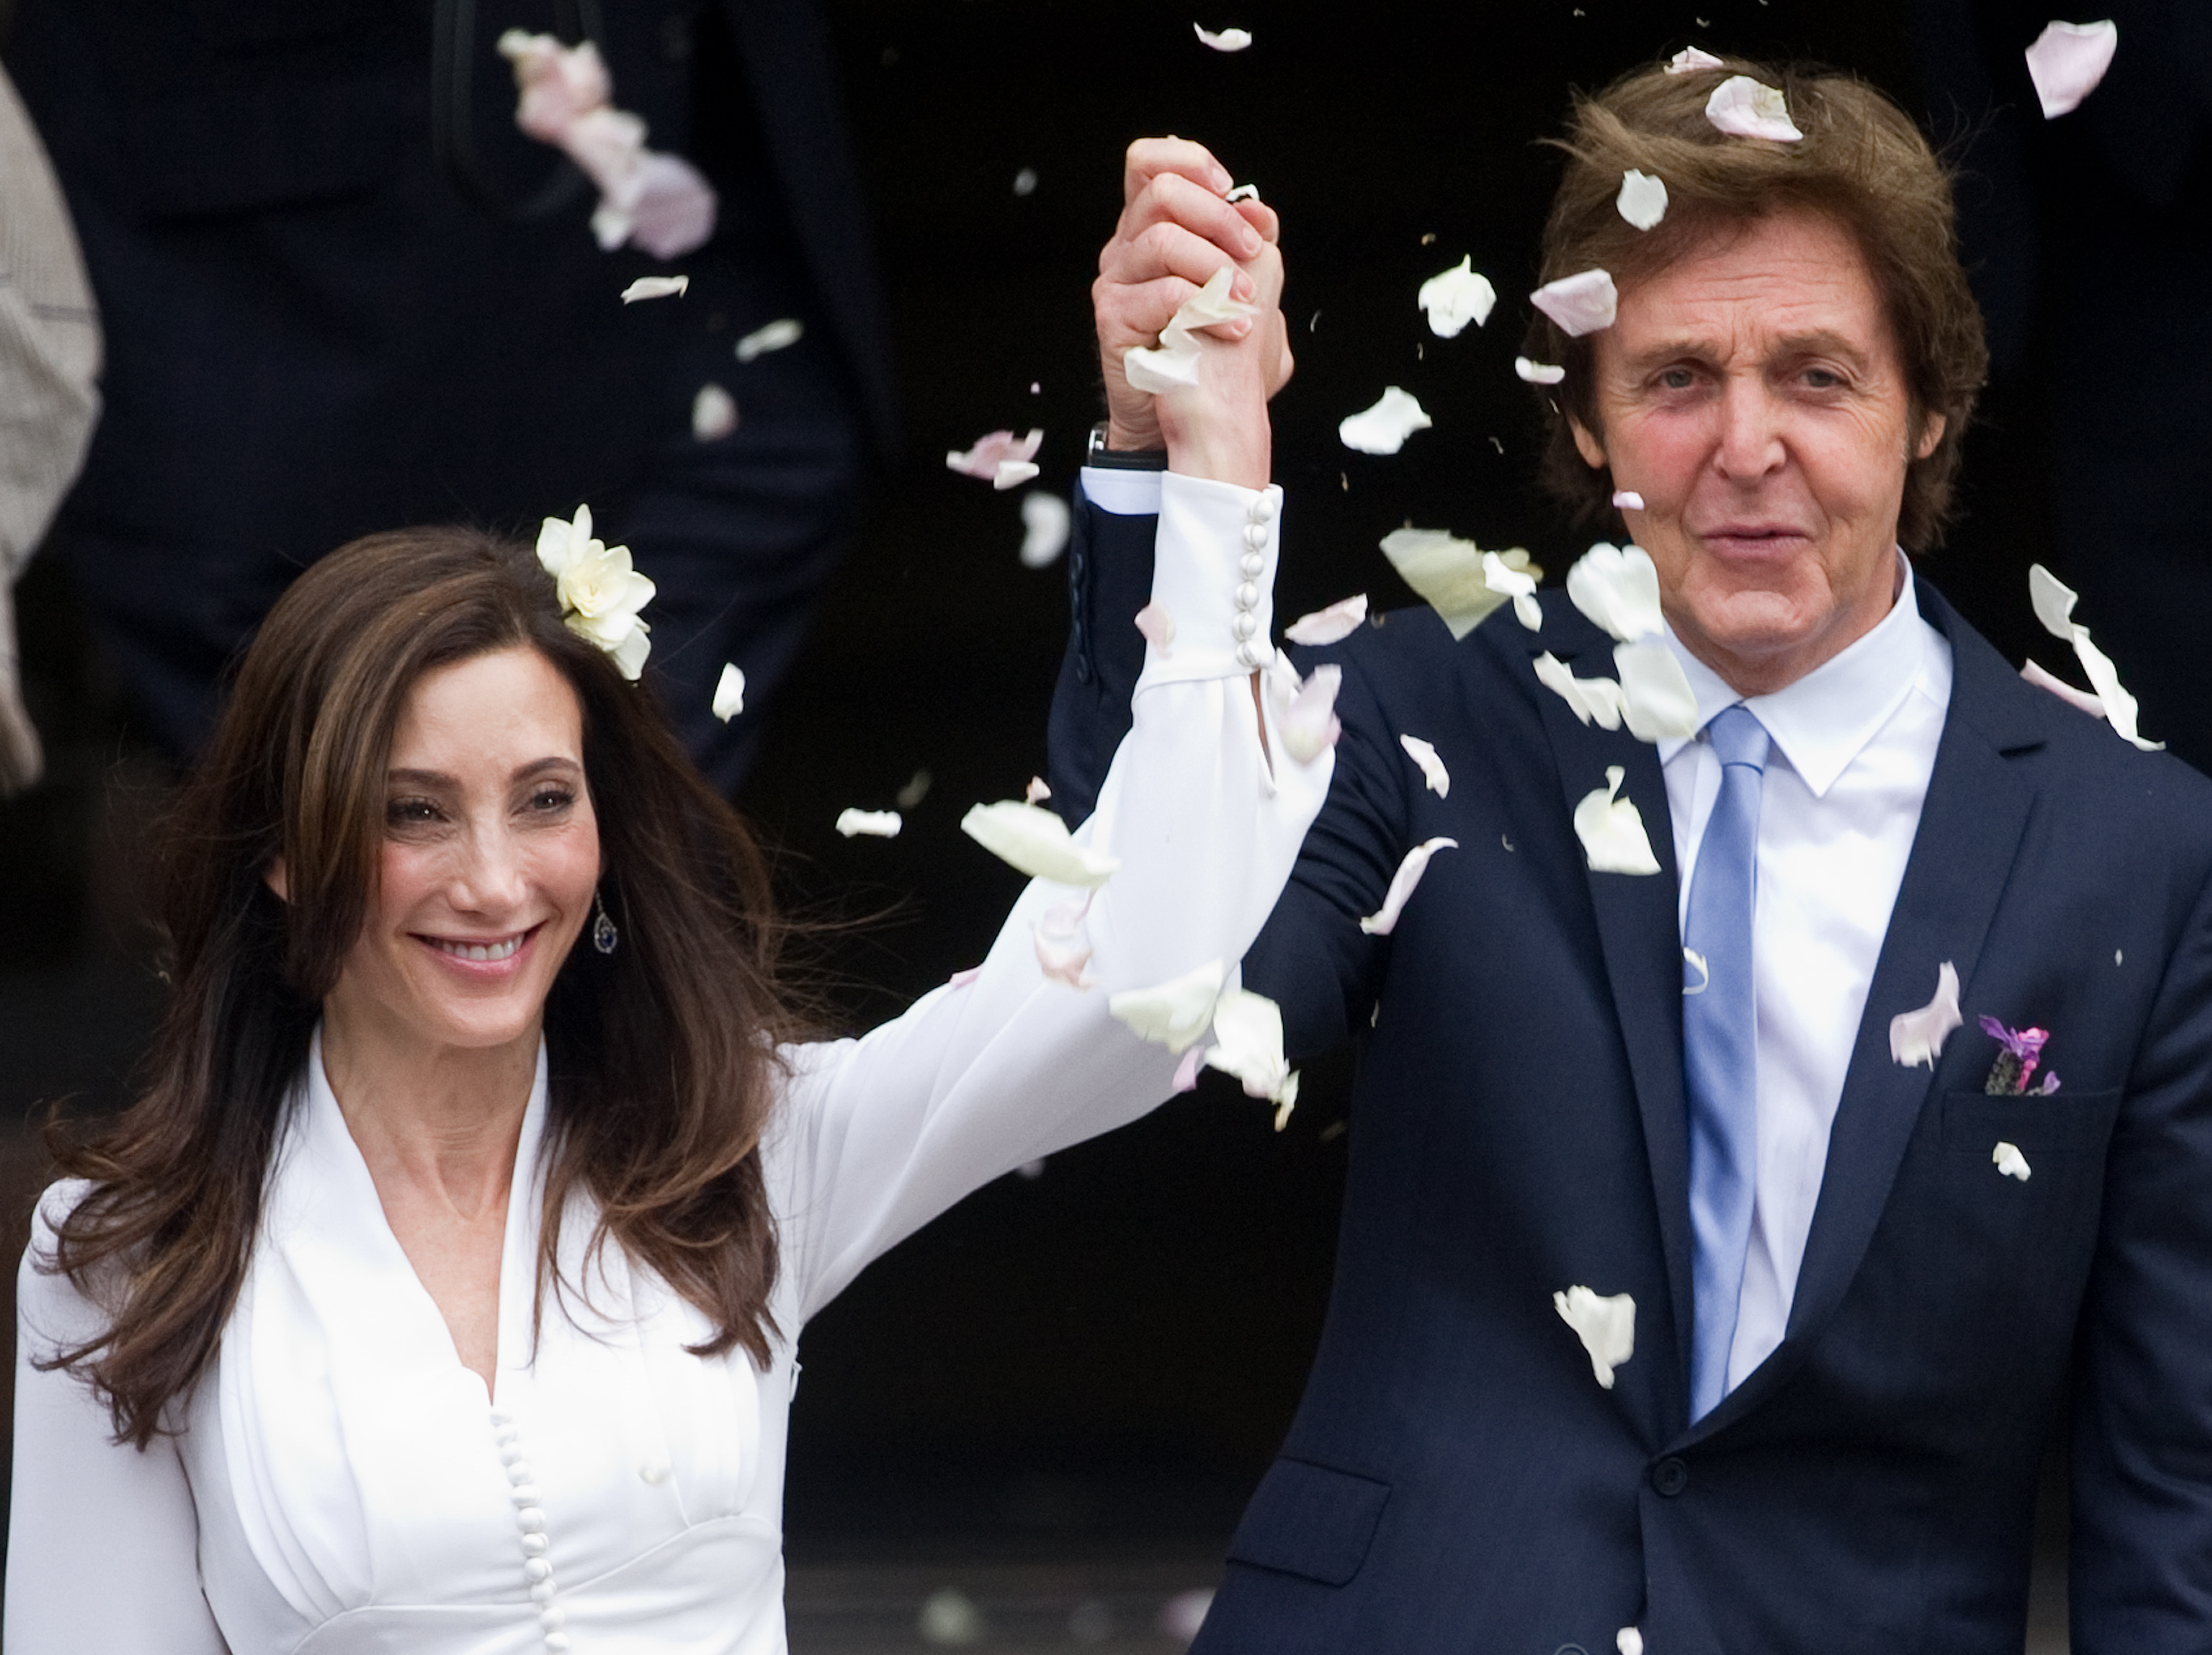 Nancy Shevell and Paul McCartney made their first appearance as man and wife!